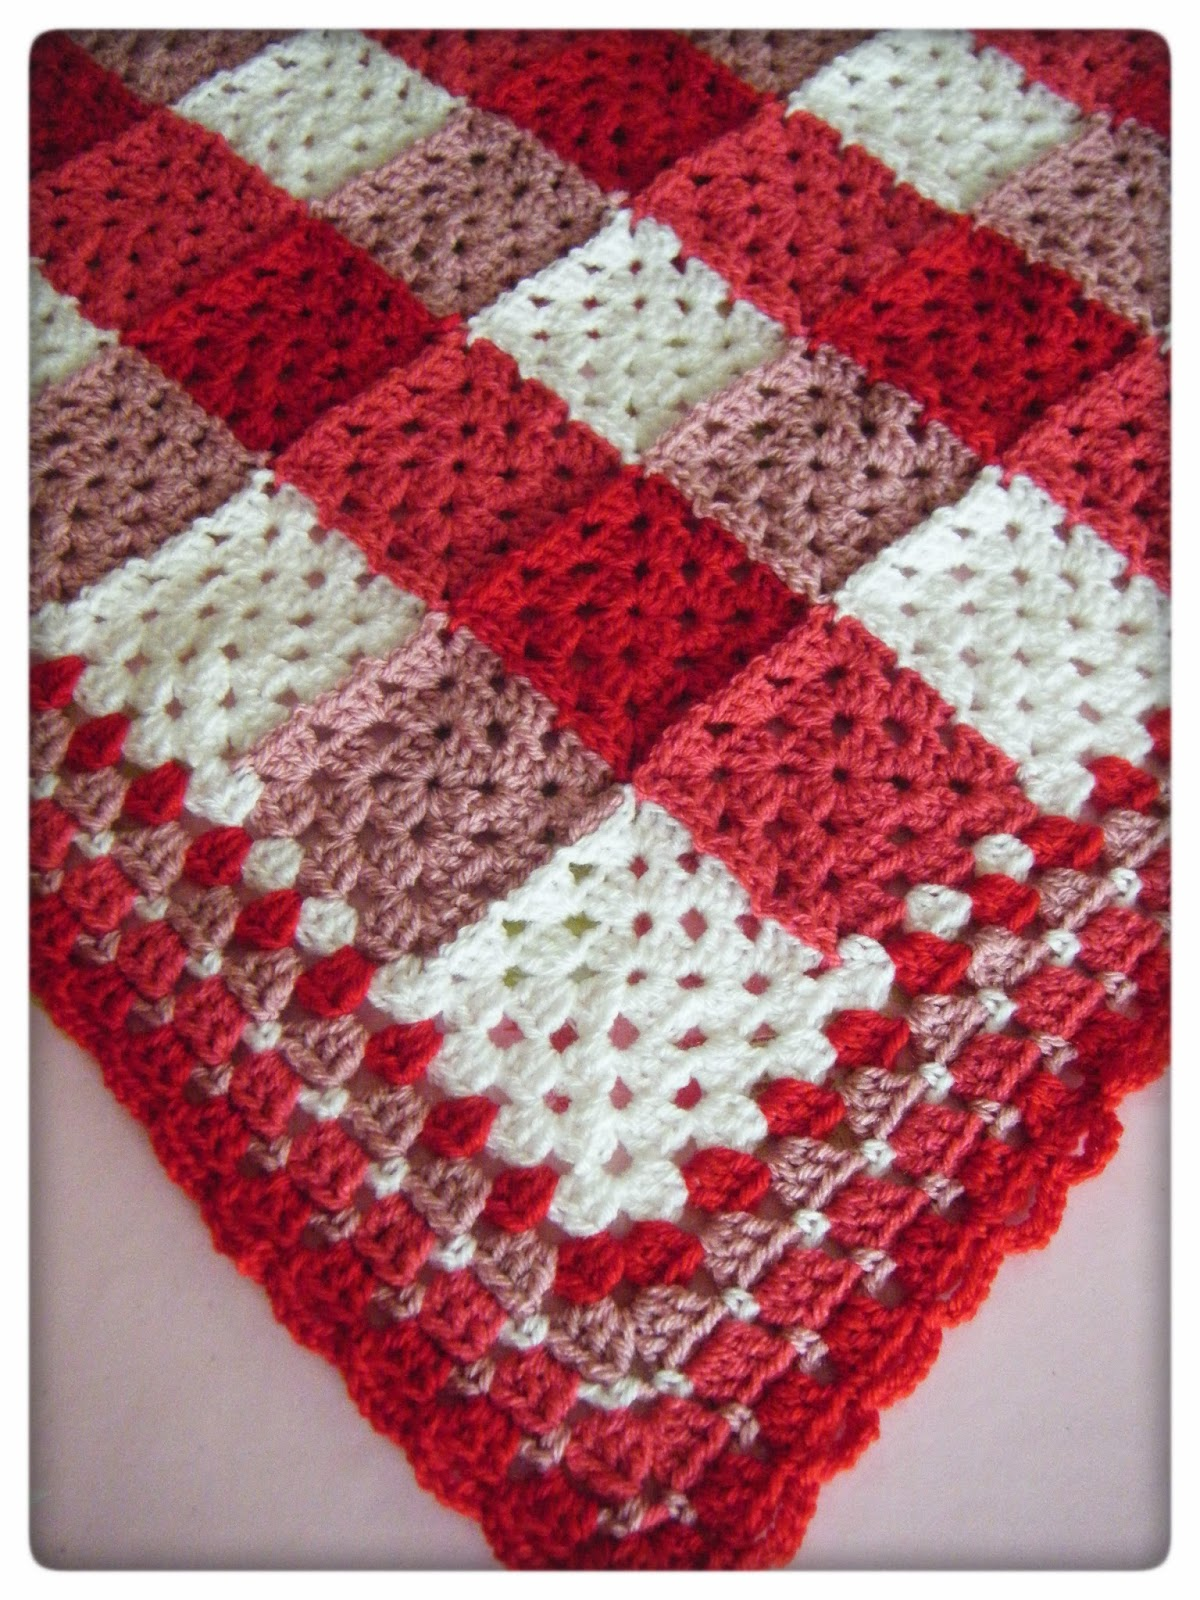 Crocheting Gifts : Crochet Gifts